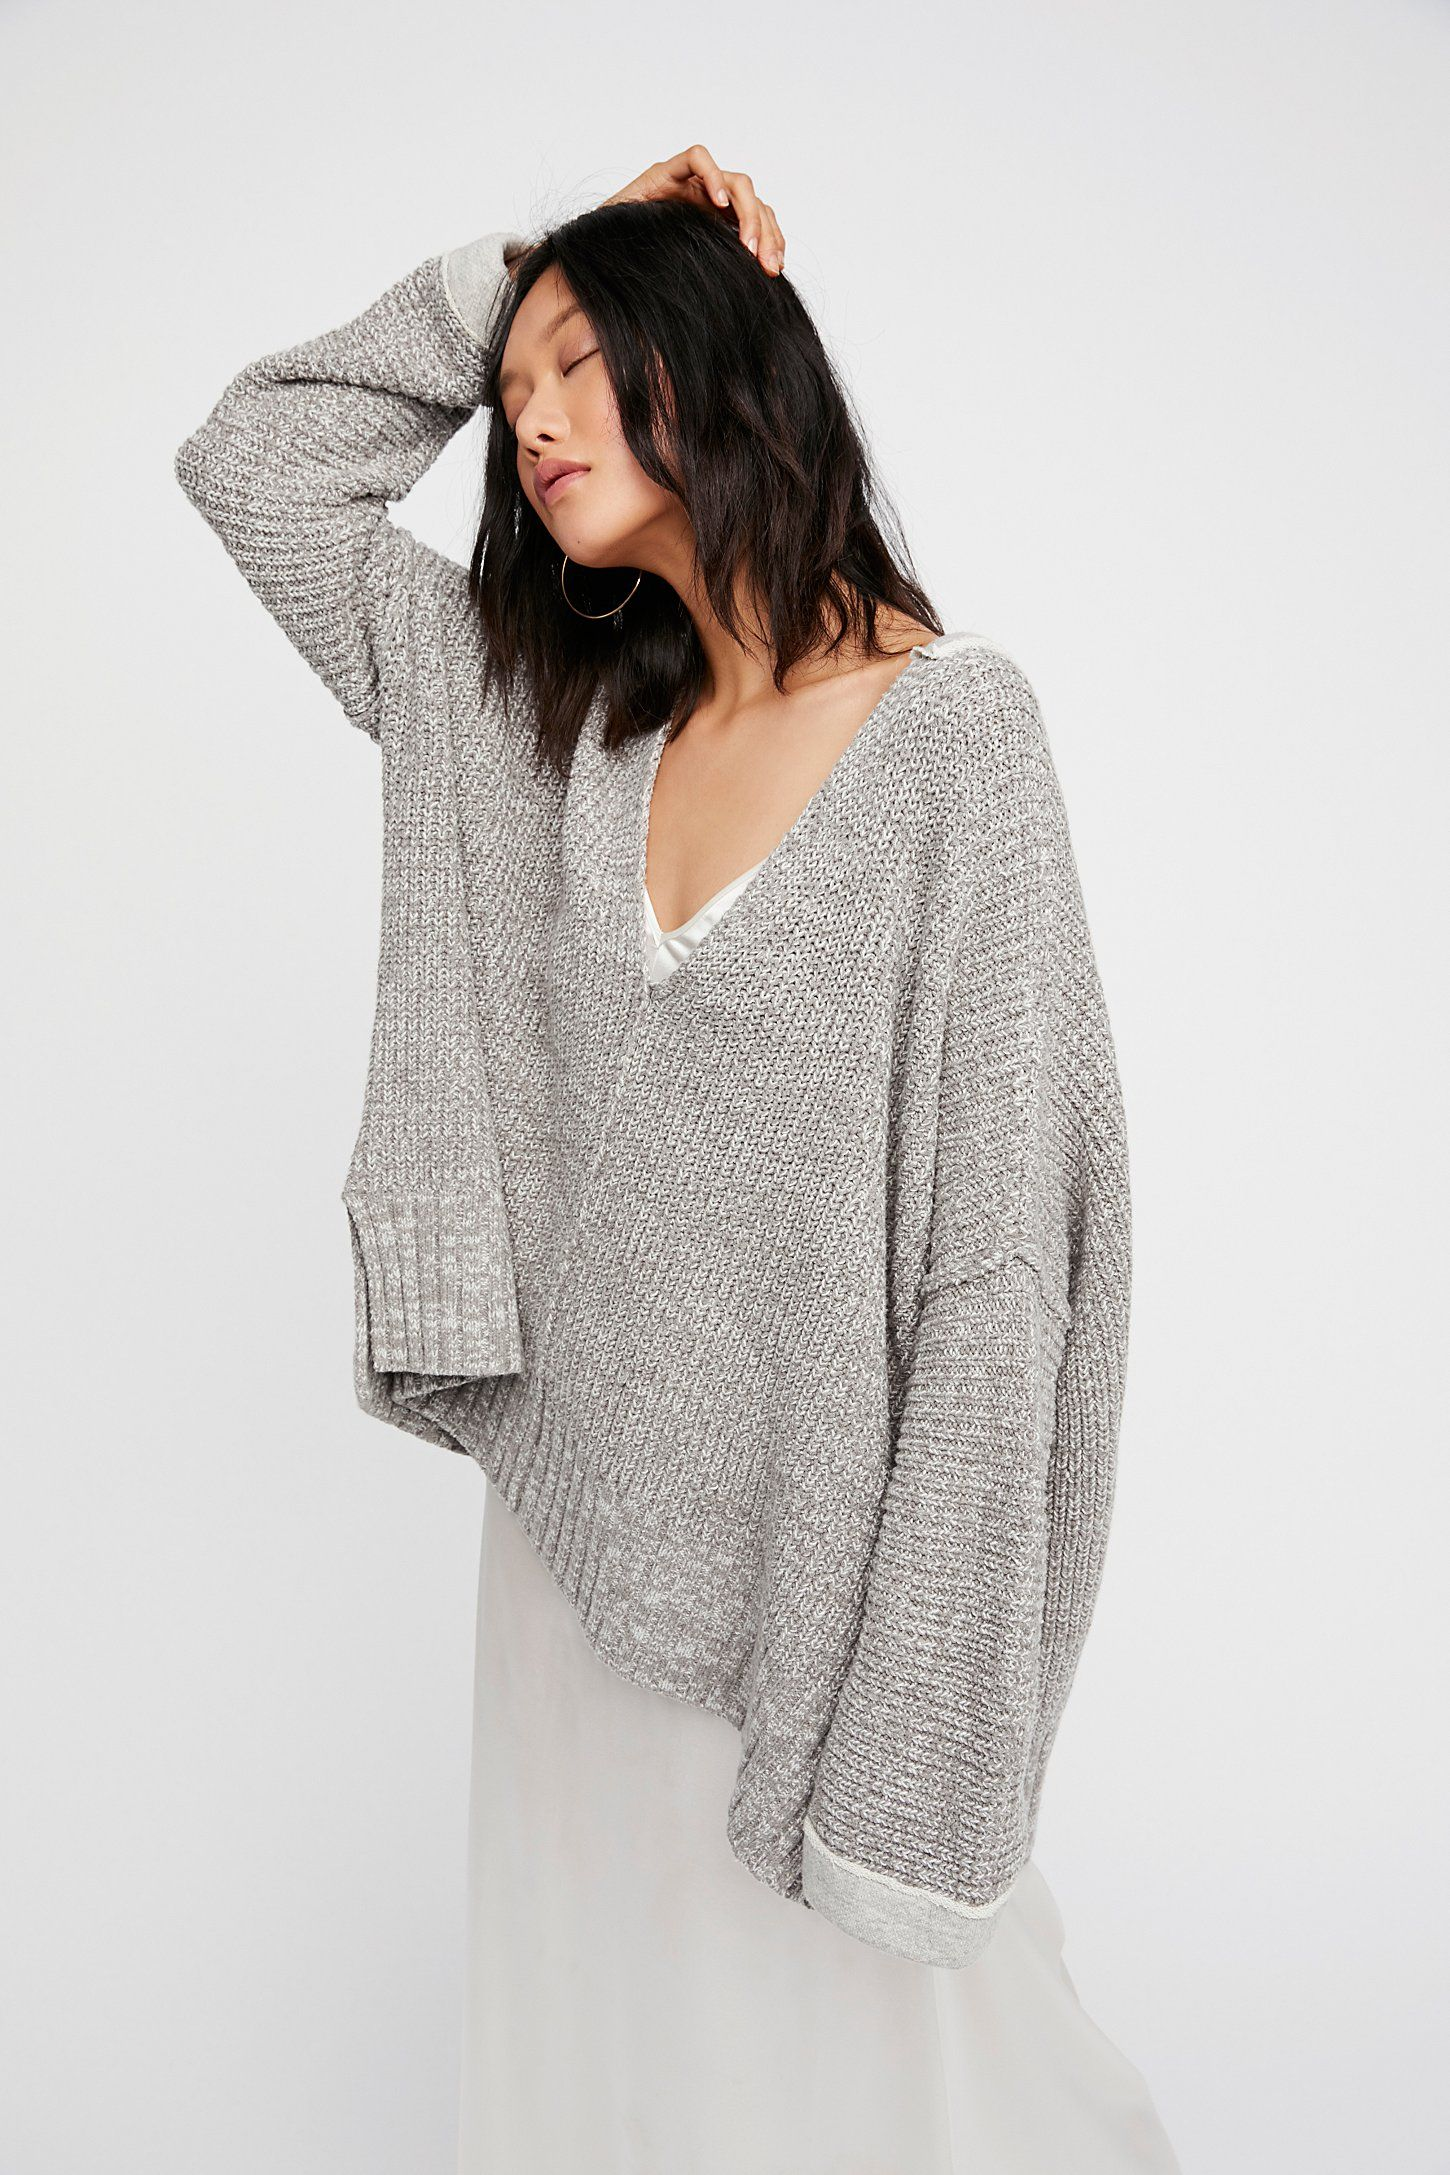 d5a8a986a4cf Take Me Over V-Neck Sweater | Christmas | Pinterest | Detail ...